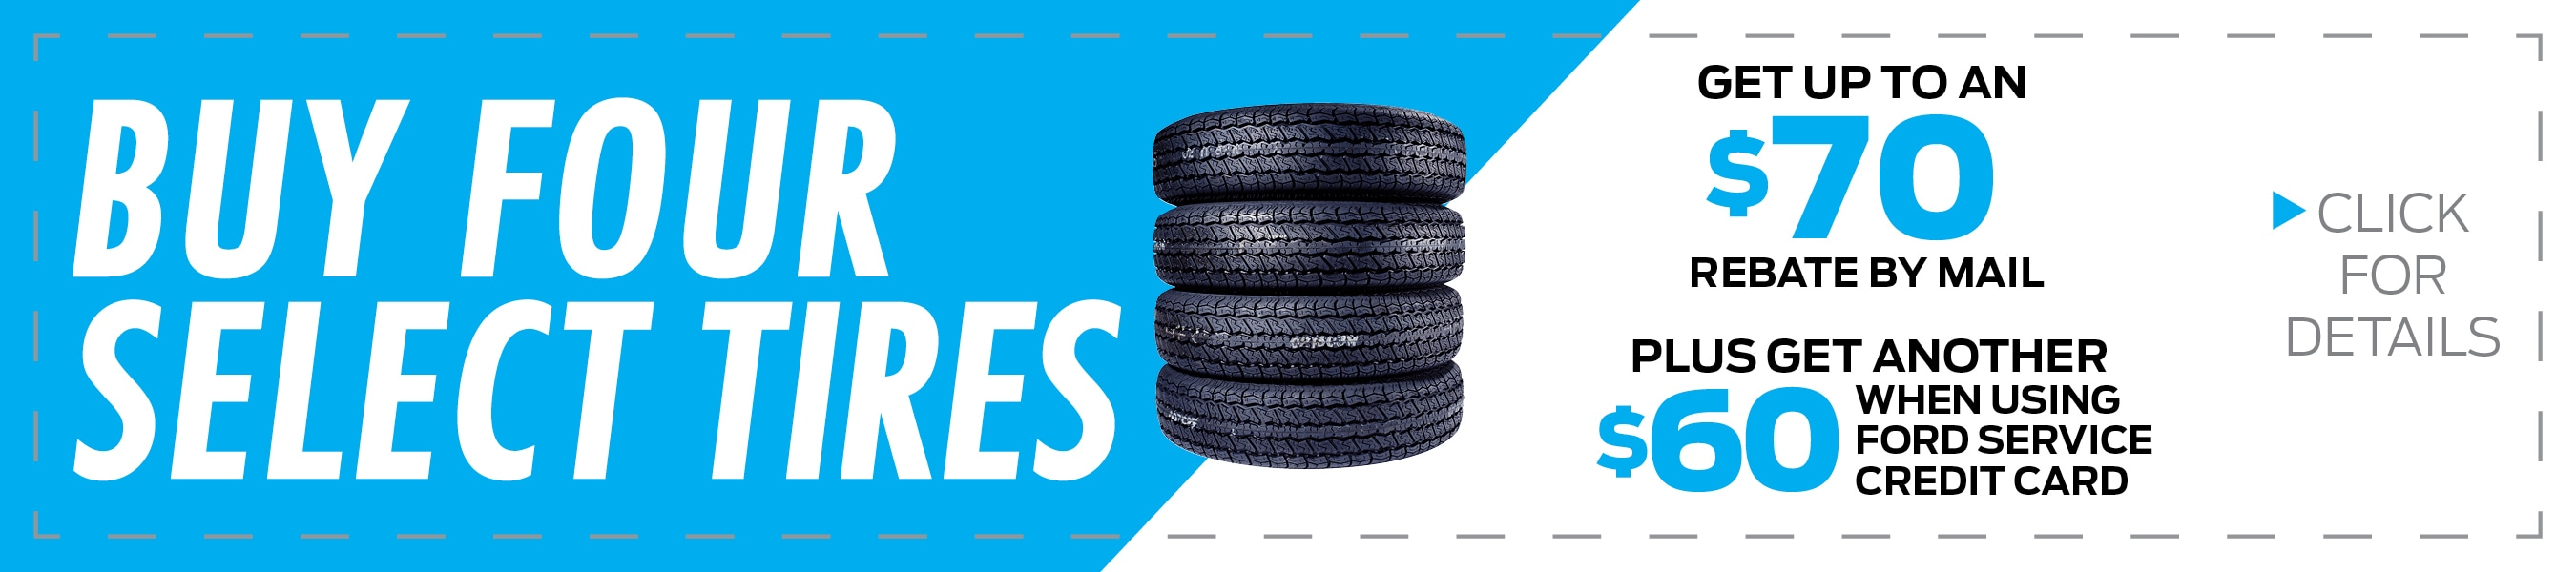 4 Tire $130 Mail-In Rebate Coupon, Duluth